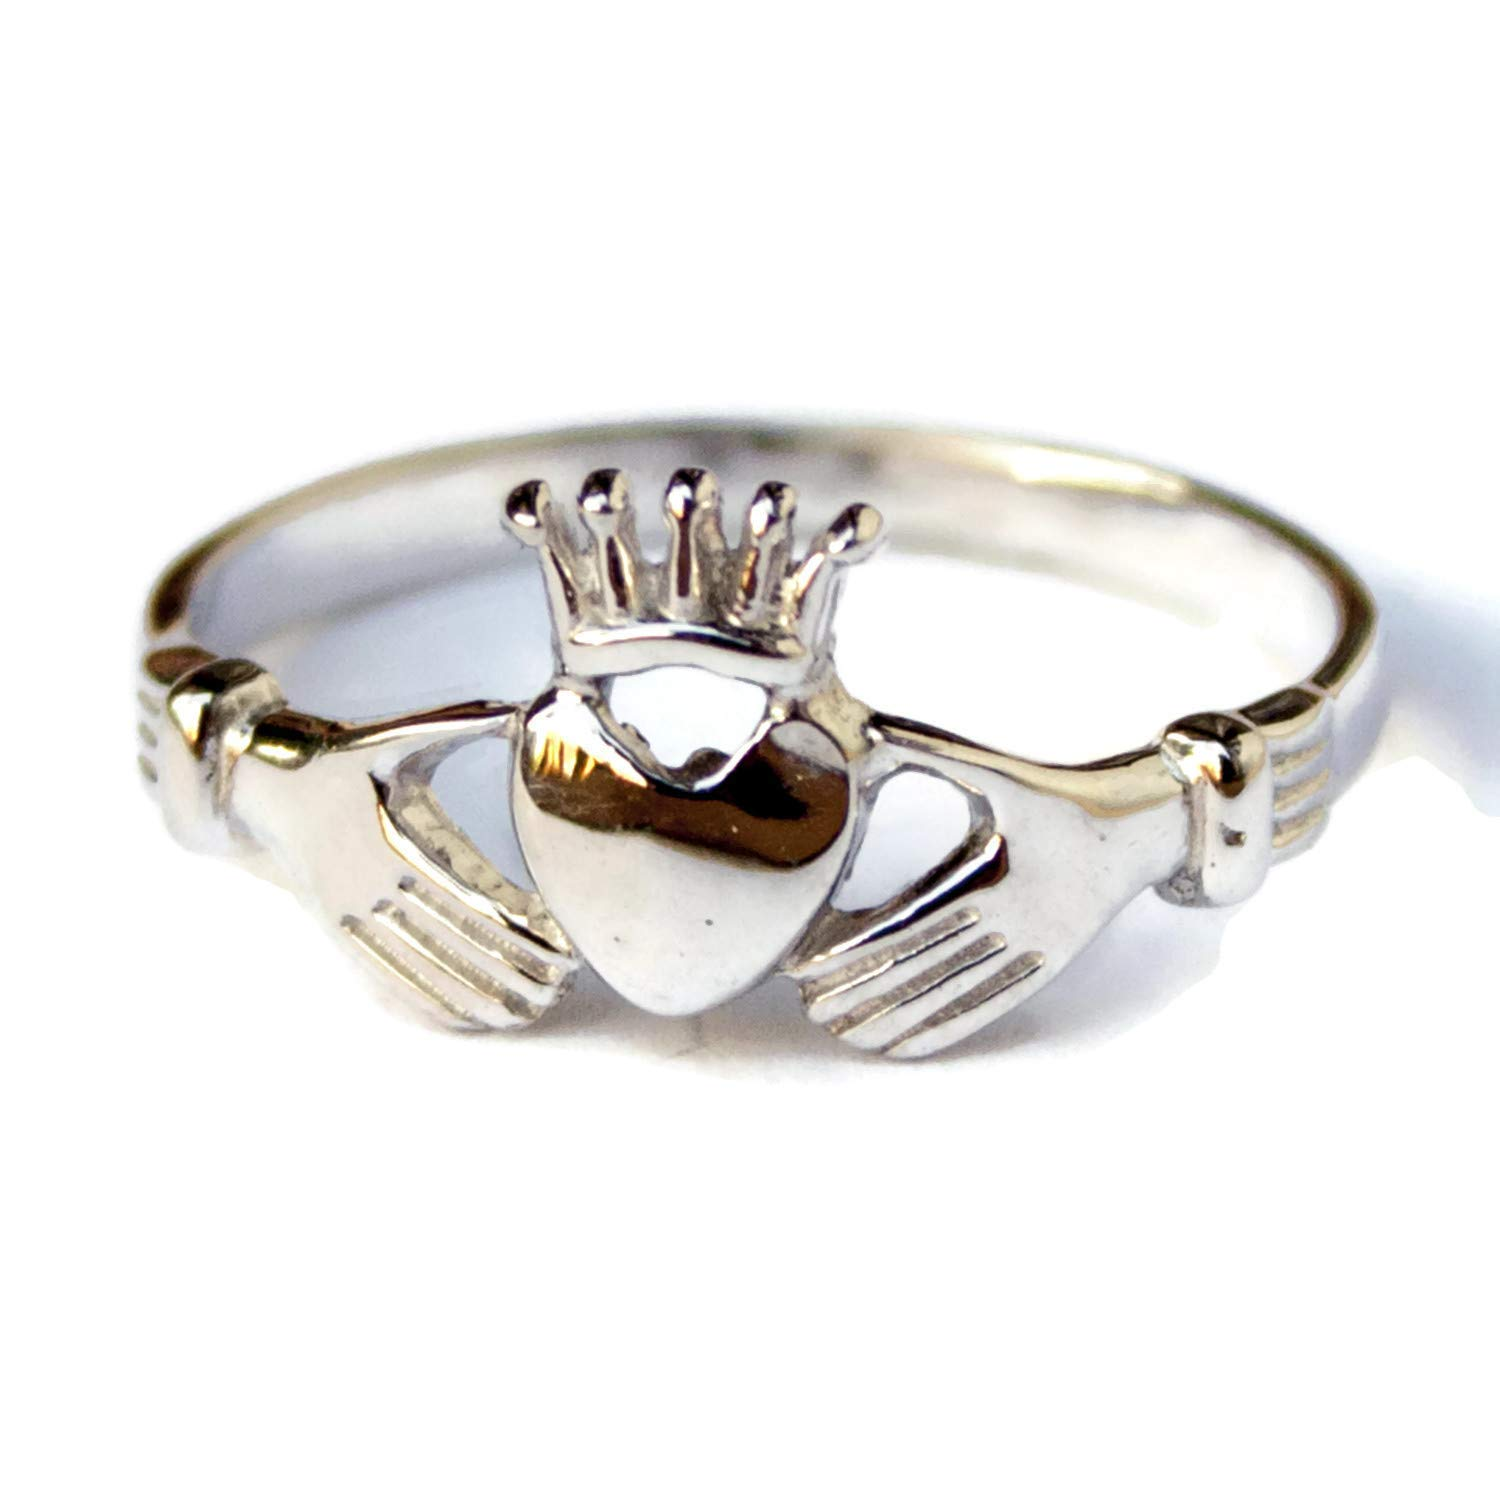 Irish Claddagh Ring 925 Sterling Silver Jewelry Promise Celtic Rings for Women Friendship Love Band